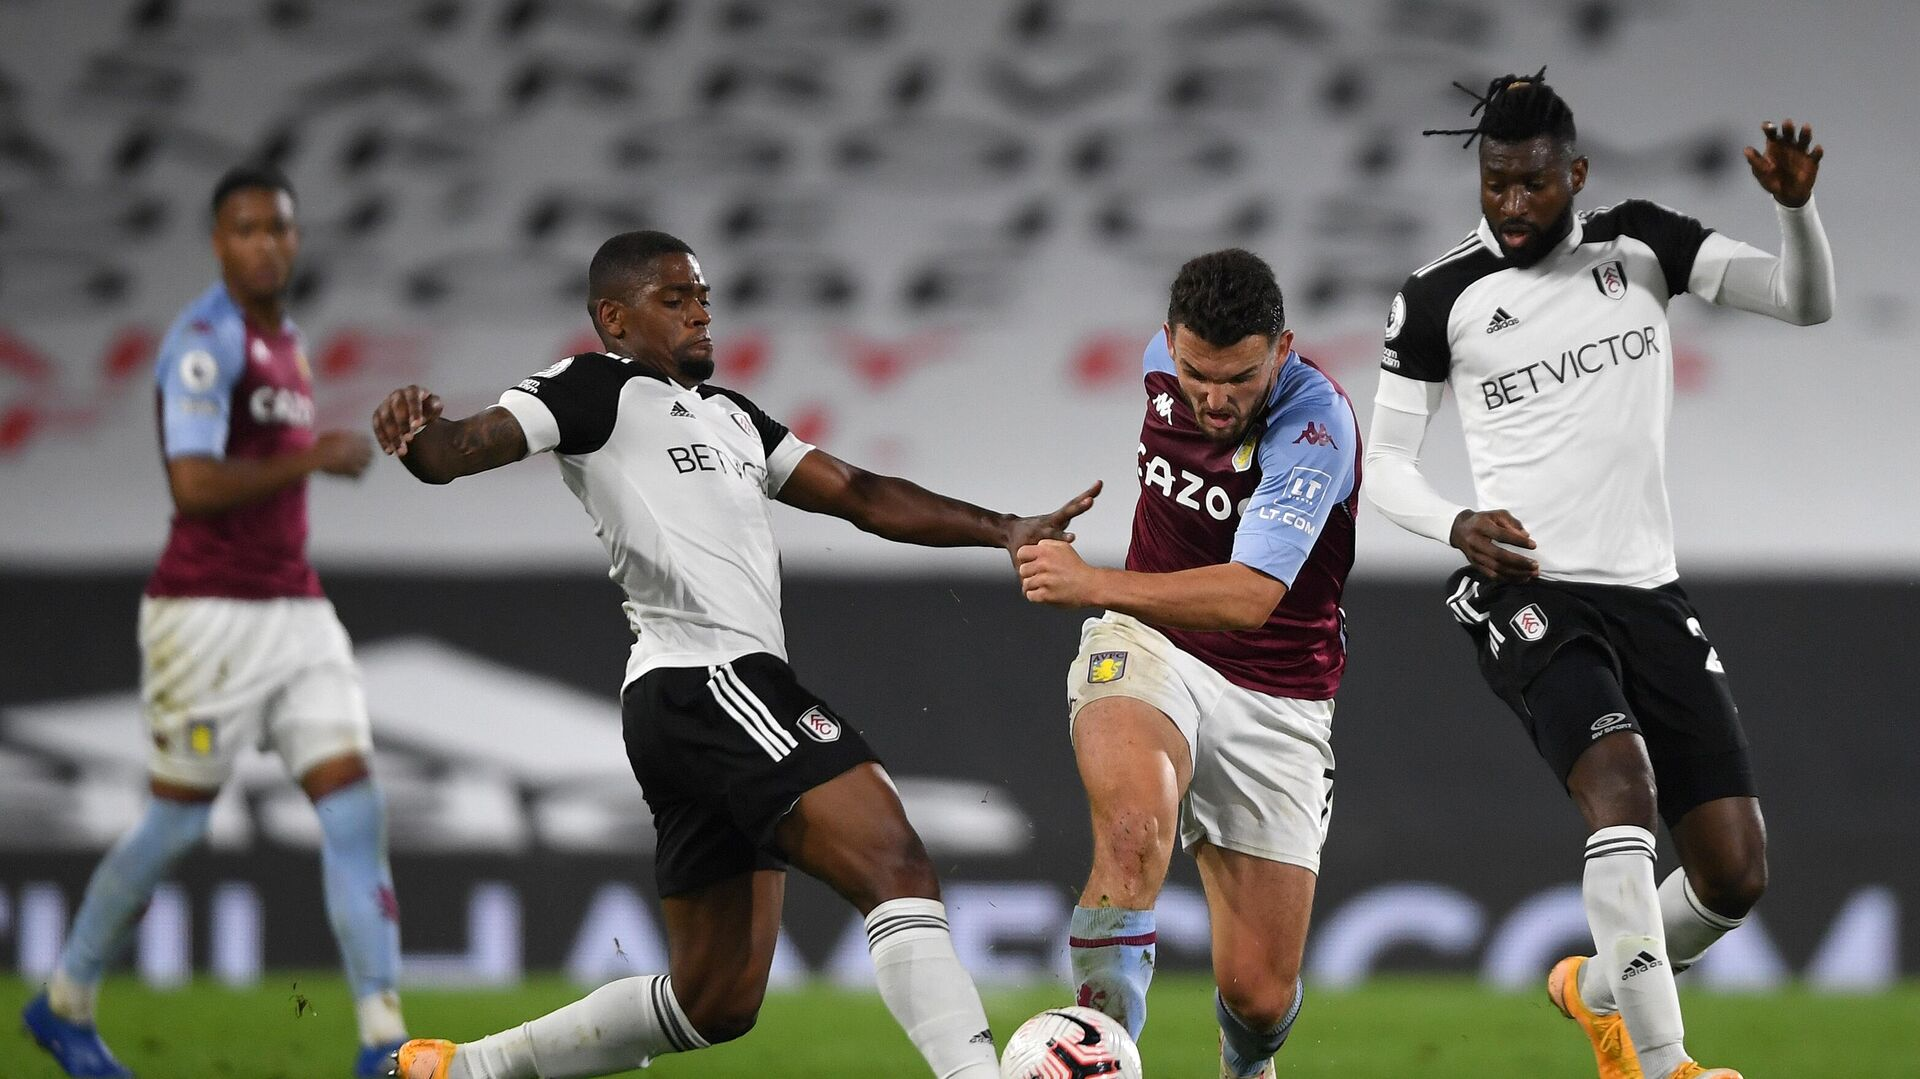 Fulham's Portuguese striker Ivan Cavaleiro (L fouls Aston Villa's Scottish midfielder John McGinn during the English Premier League football match between Fulham and Aston Villa at Craven Cottage in London on September 28, 2020. (Photo by Mike Hewitt / POOL / AFP) / RESTRICTED TO EDITORIAL USE. No use with unauthorized audio, video, data, fixture lists, club/league logos or 'live' services. Online in-match use limited to 120 images. An additional 40 images may be used in extra time. No video emulation. Social media in-match use limited to 120 images. An additional 40 images may be used in extra time. No use in betting publications, games or single club/league/player publications. /  - РИА Новости, 1920, 28.09.2020